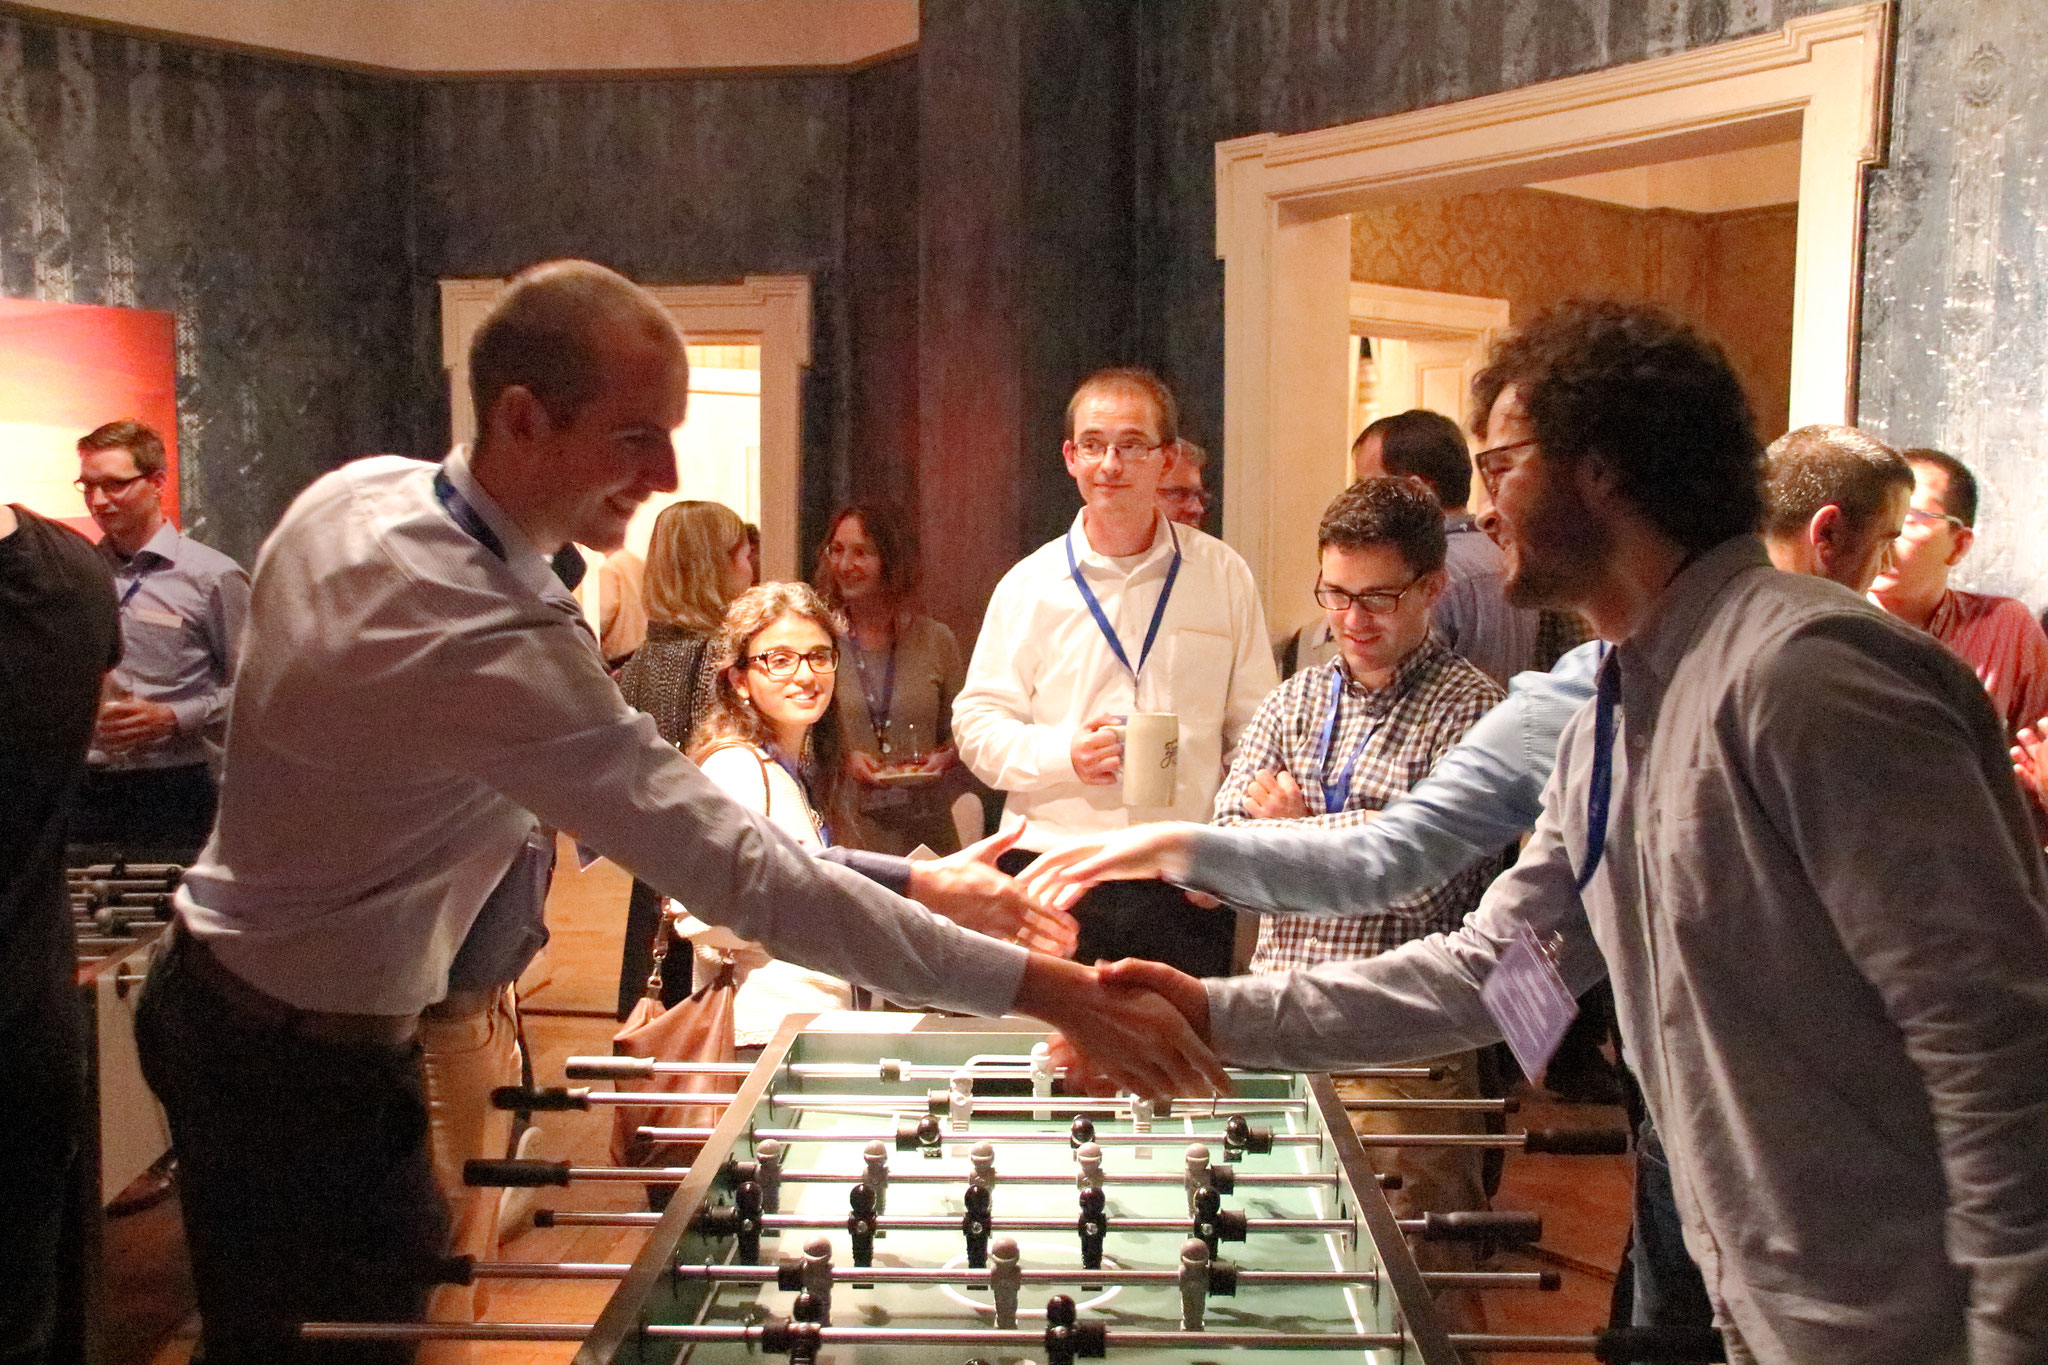 LANE participants playing a game of tabletop football at the Photonics Pub Games Night during the Casual Reception of LANE 2016